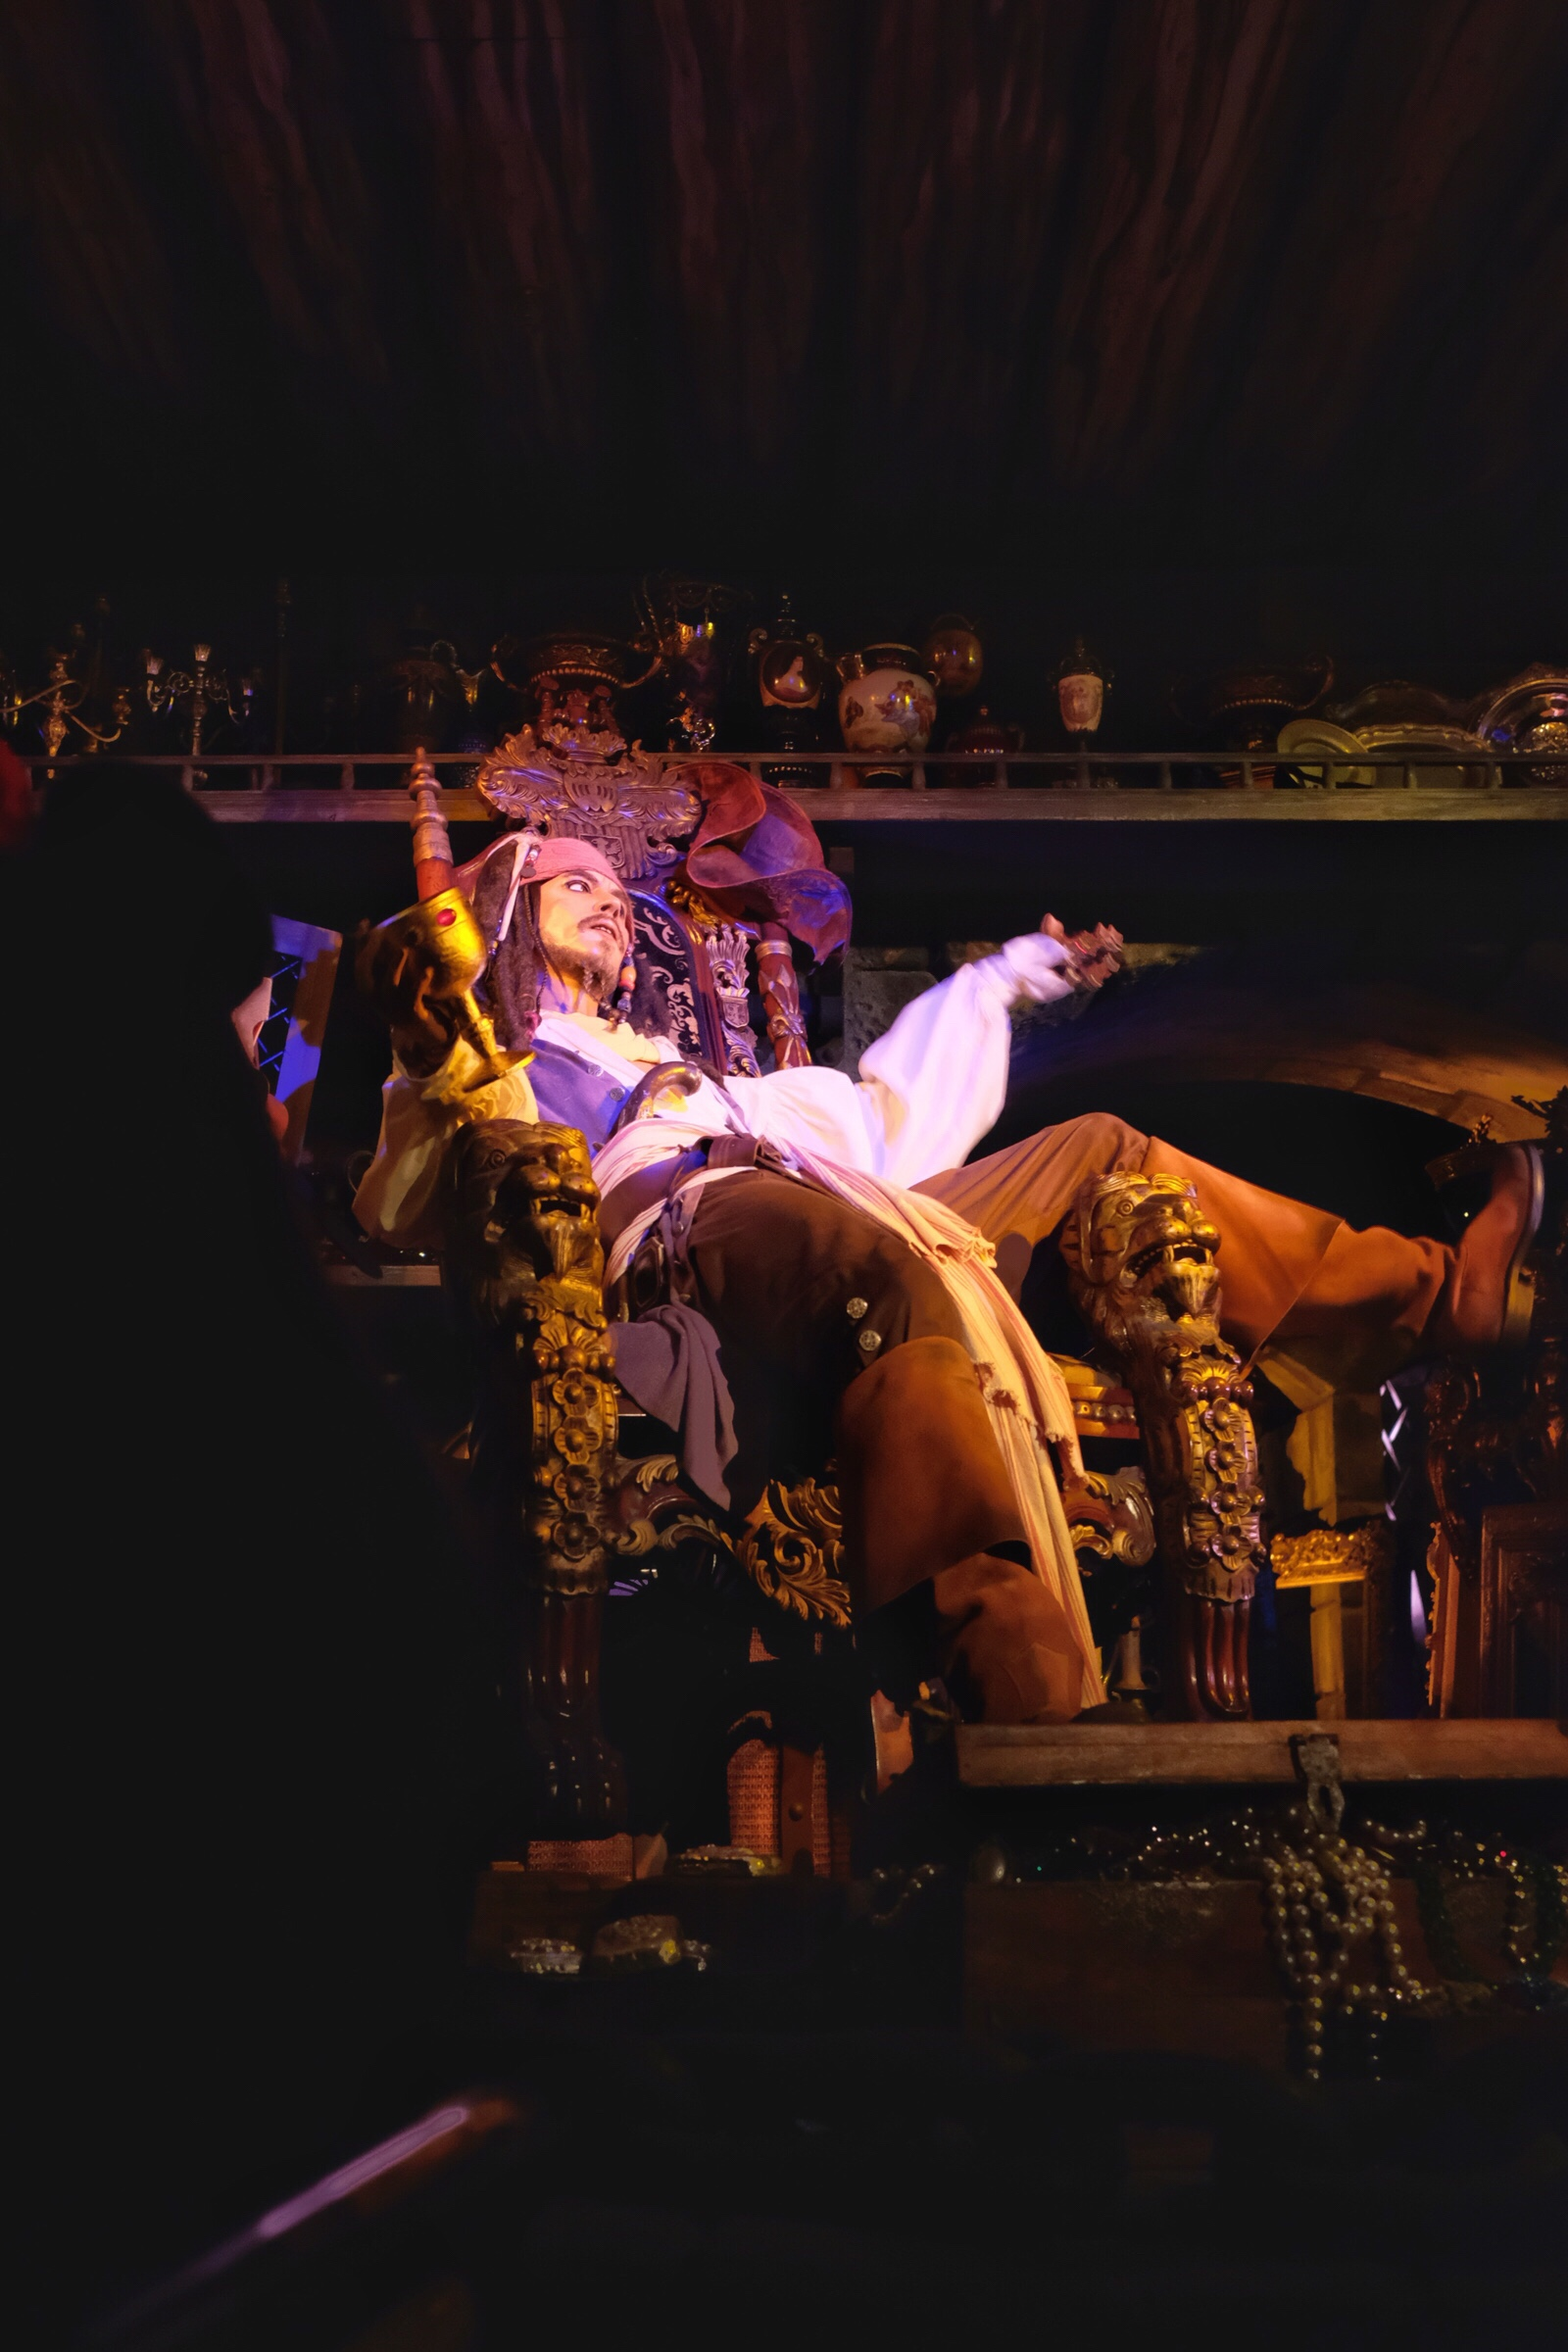 Japan – Tokyo – Tokyo Disneyland – Pirates of the Caribbean